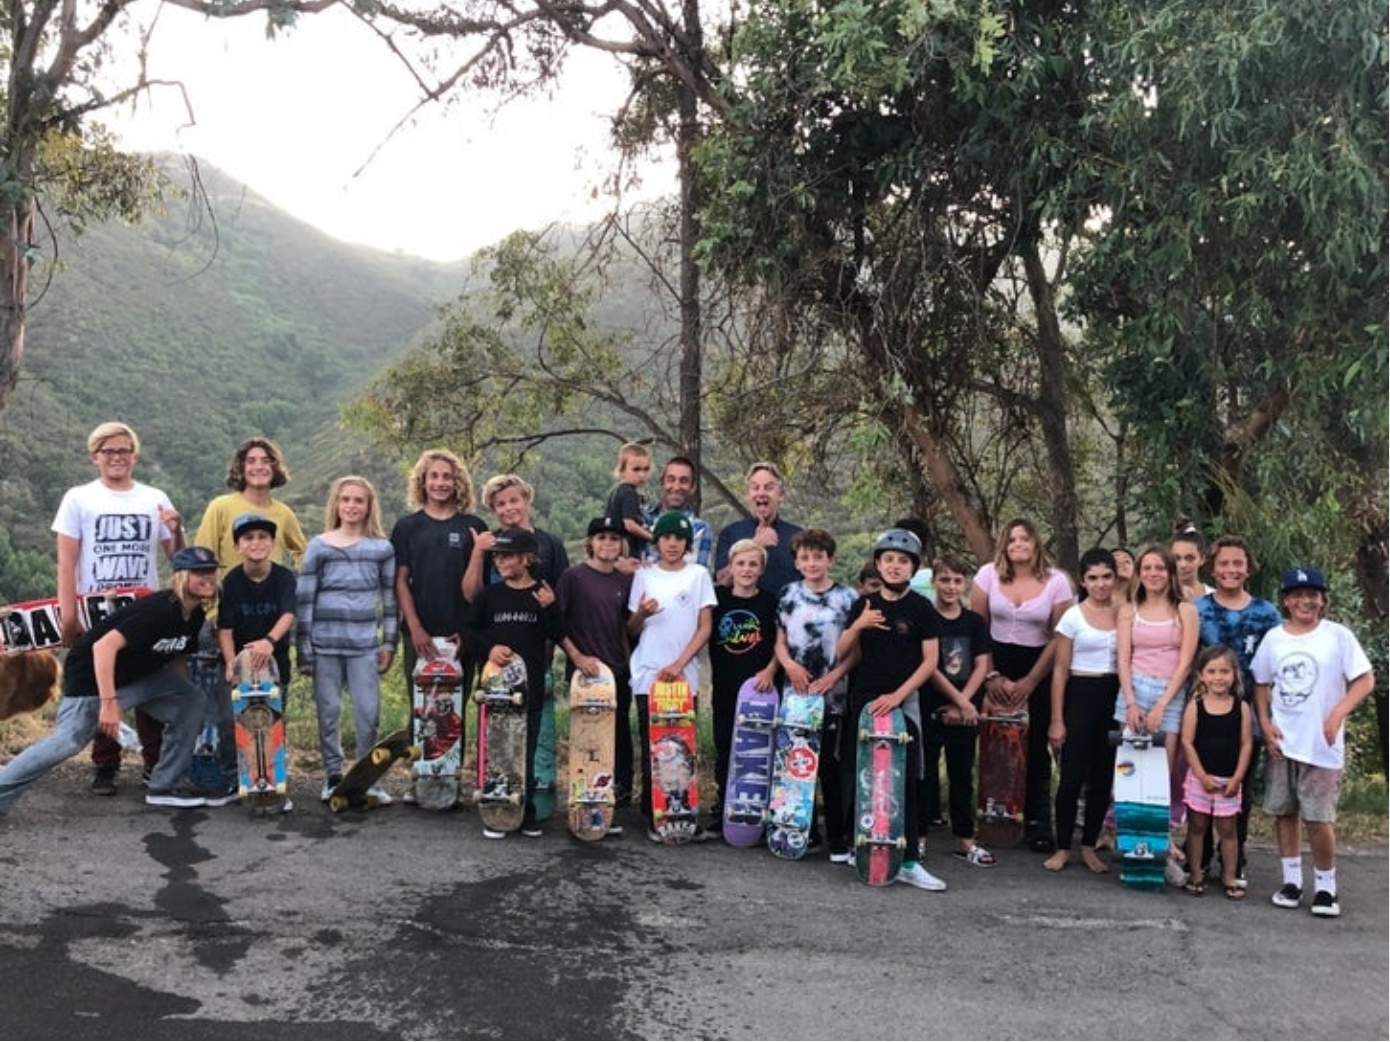 Kids gather in support of the skatepark. Photo taken by Dajana Mitchell